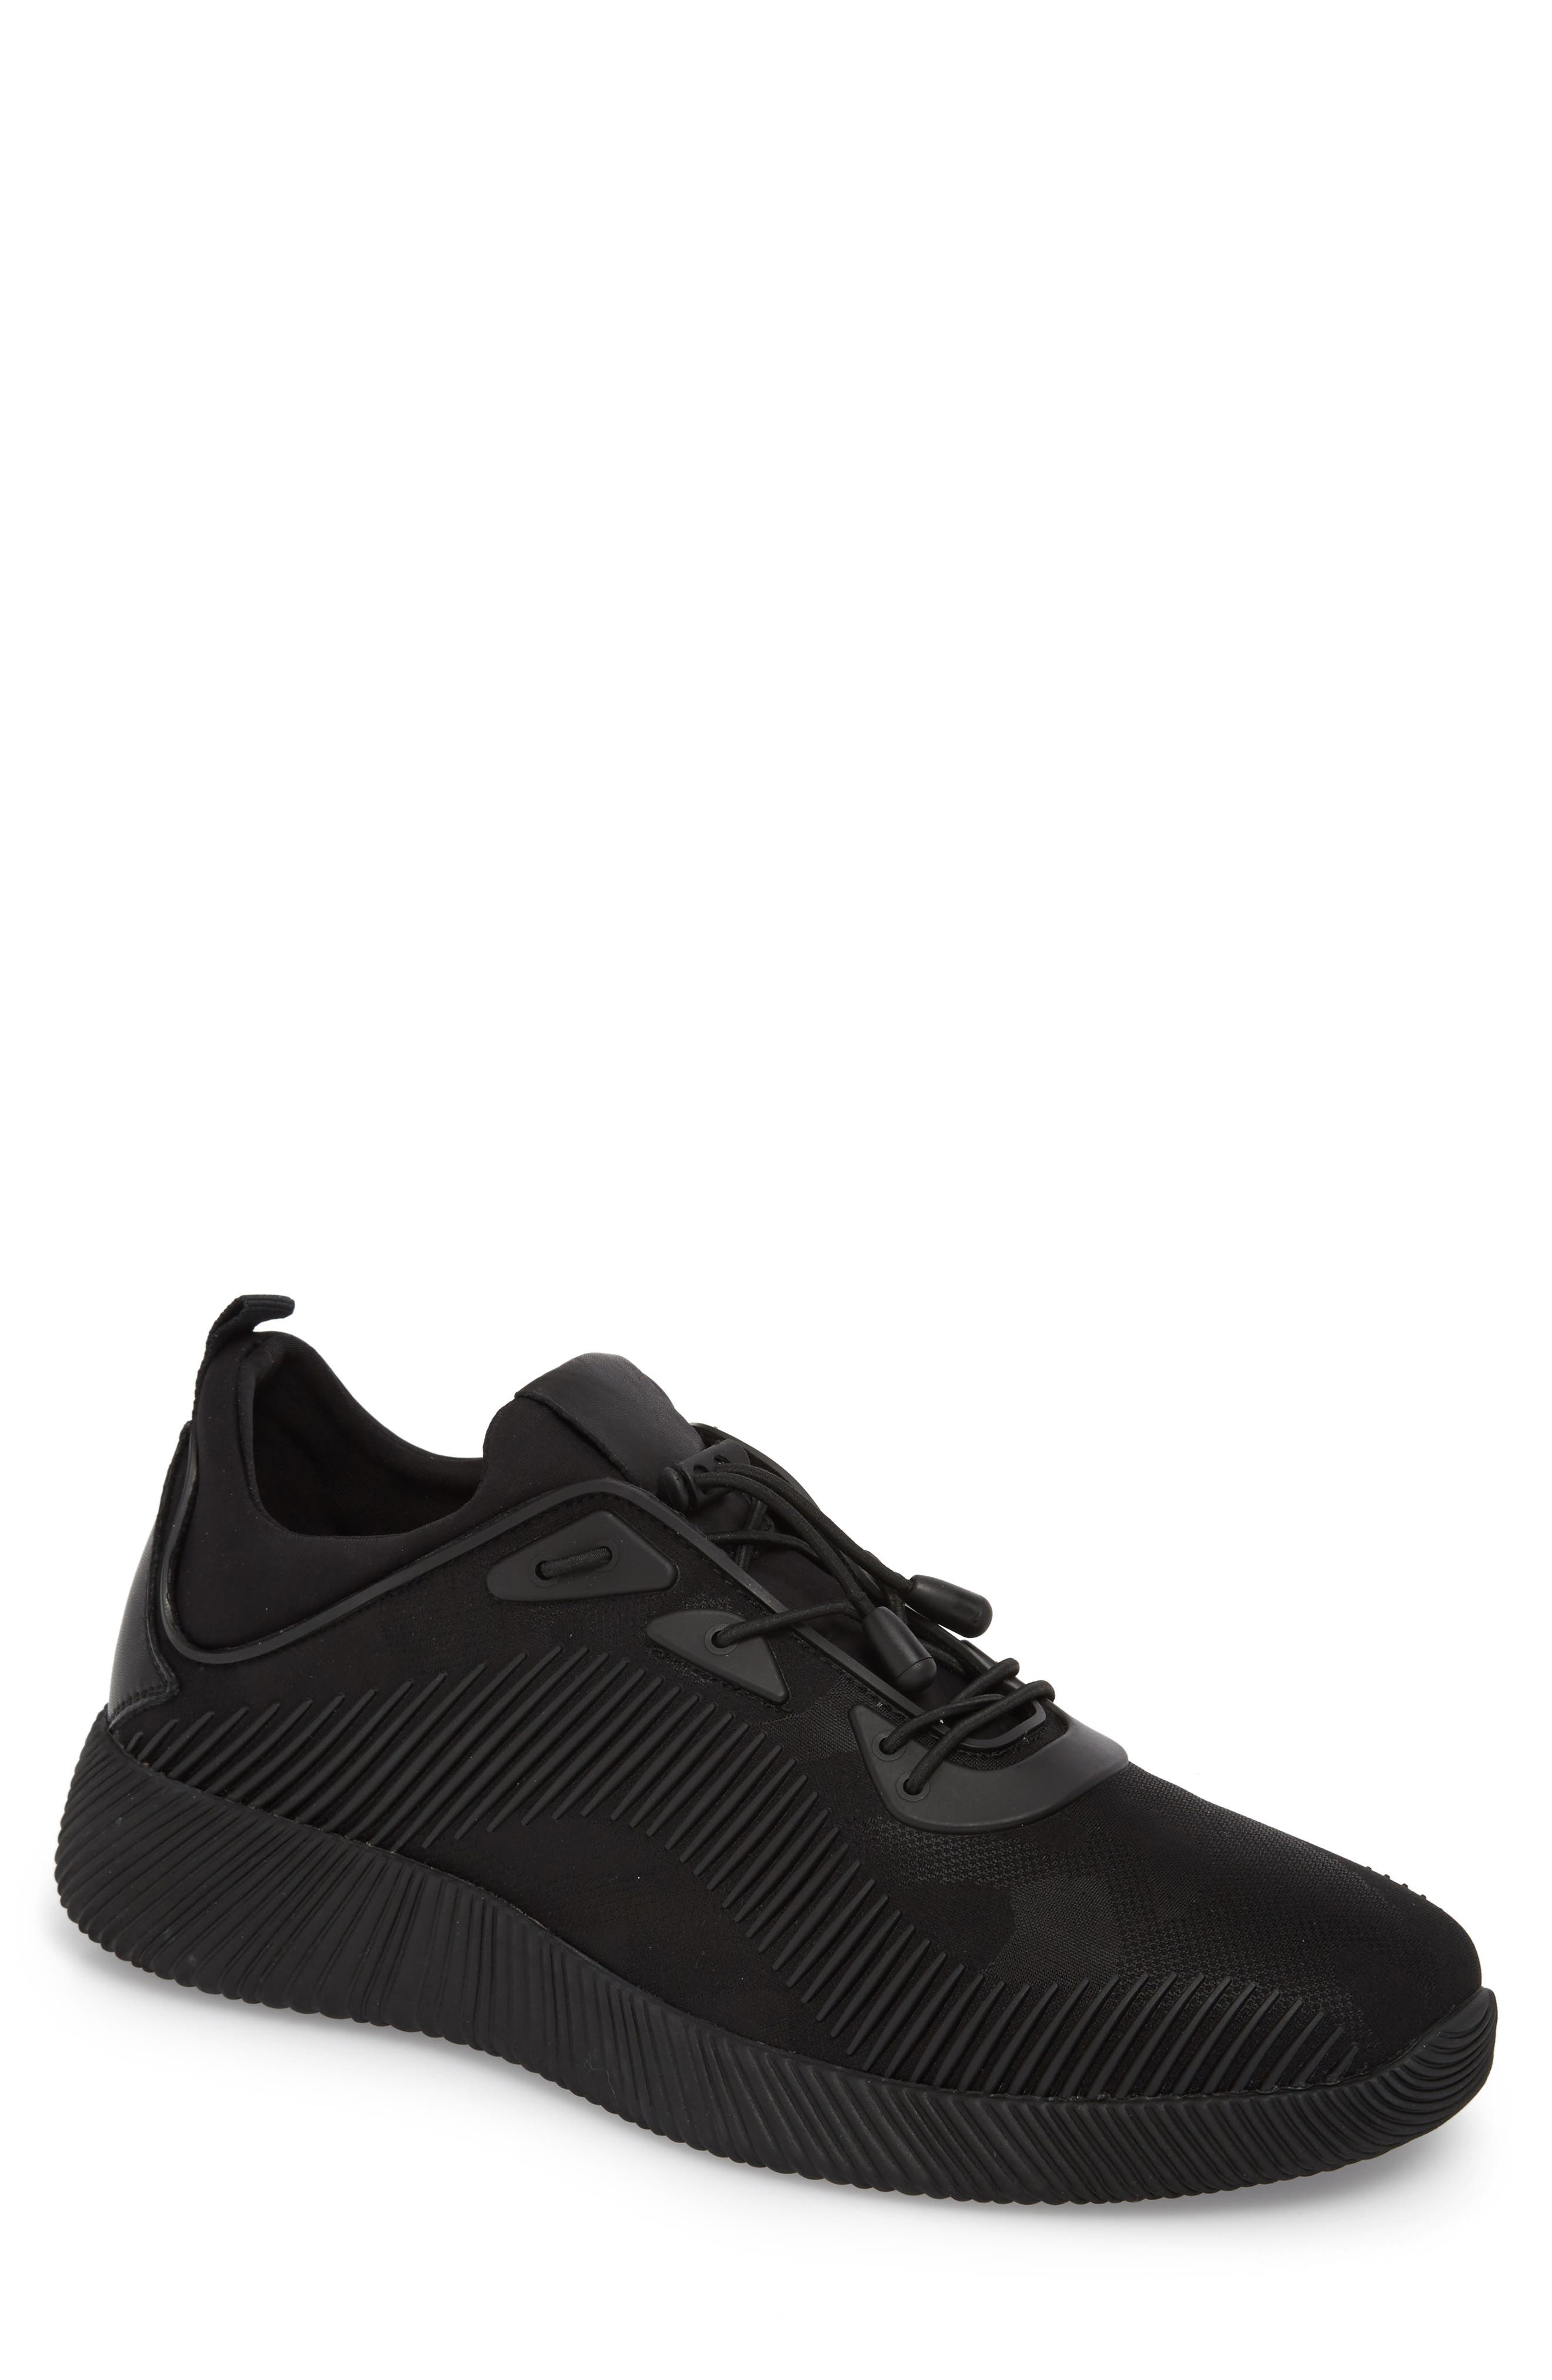 Sinch Sneaker,                         Main,                         color, 001